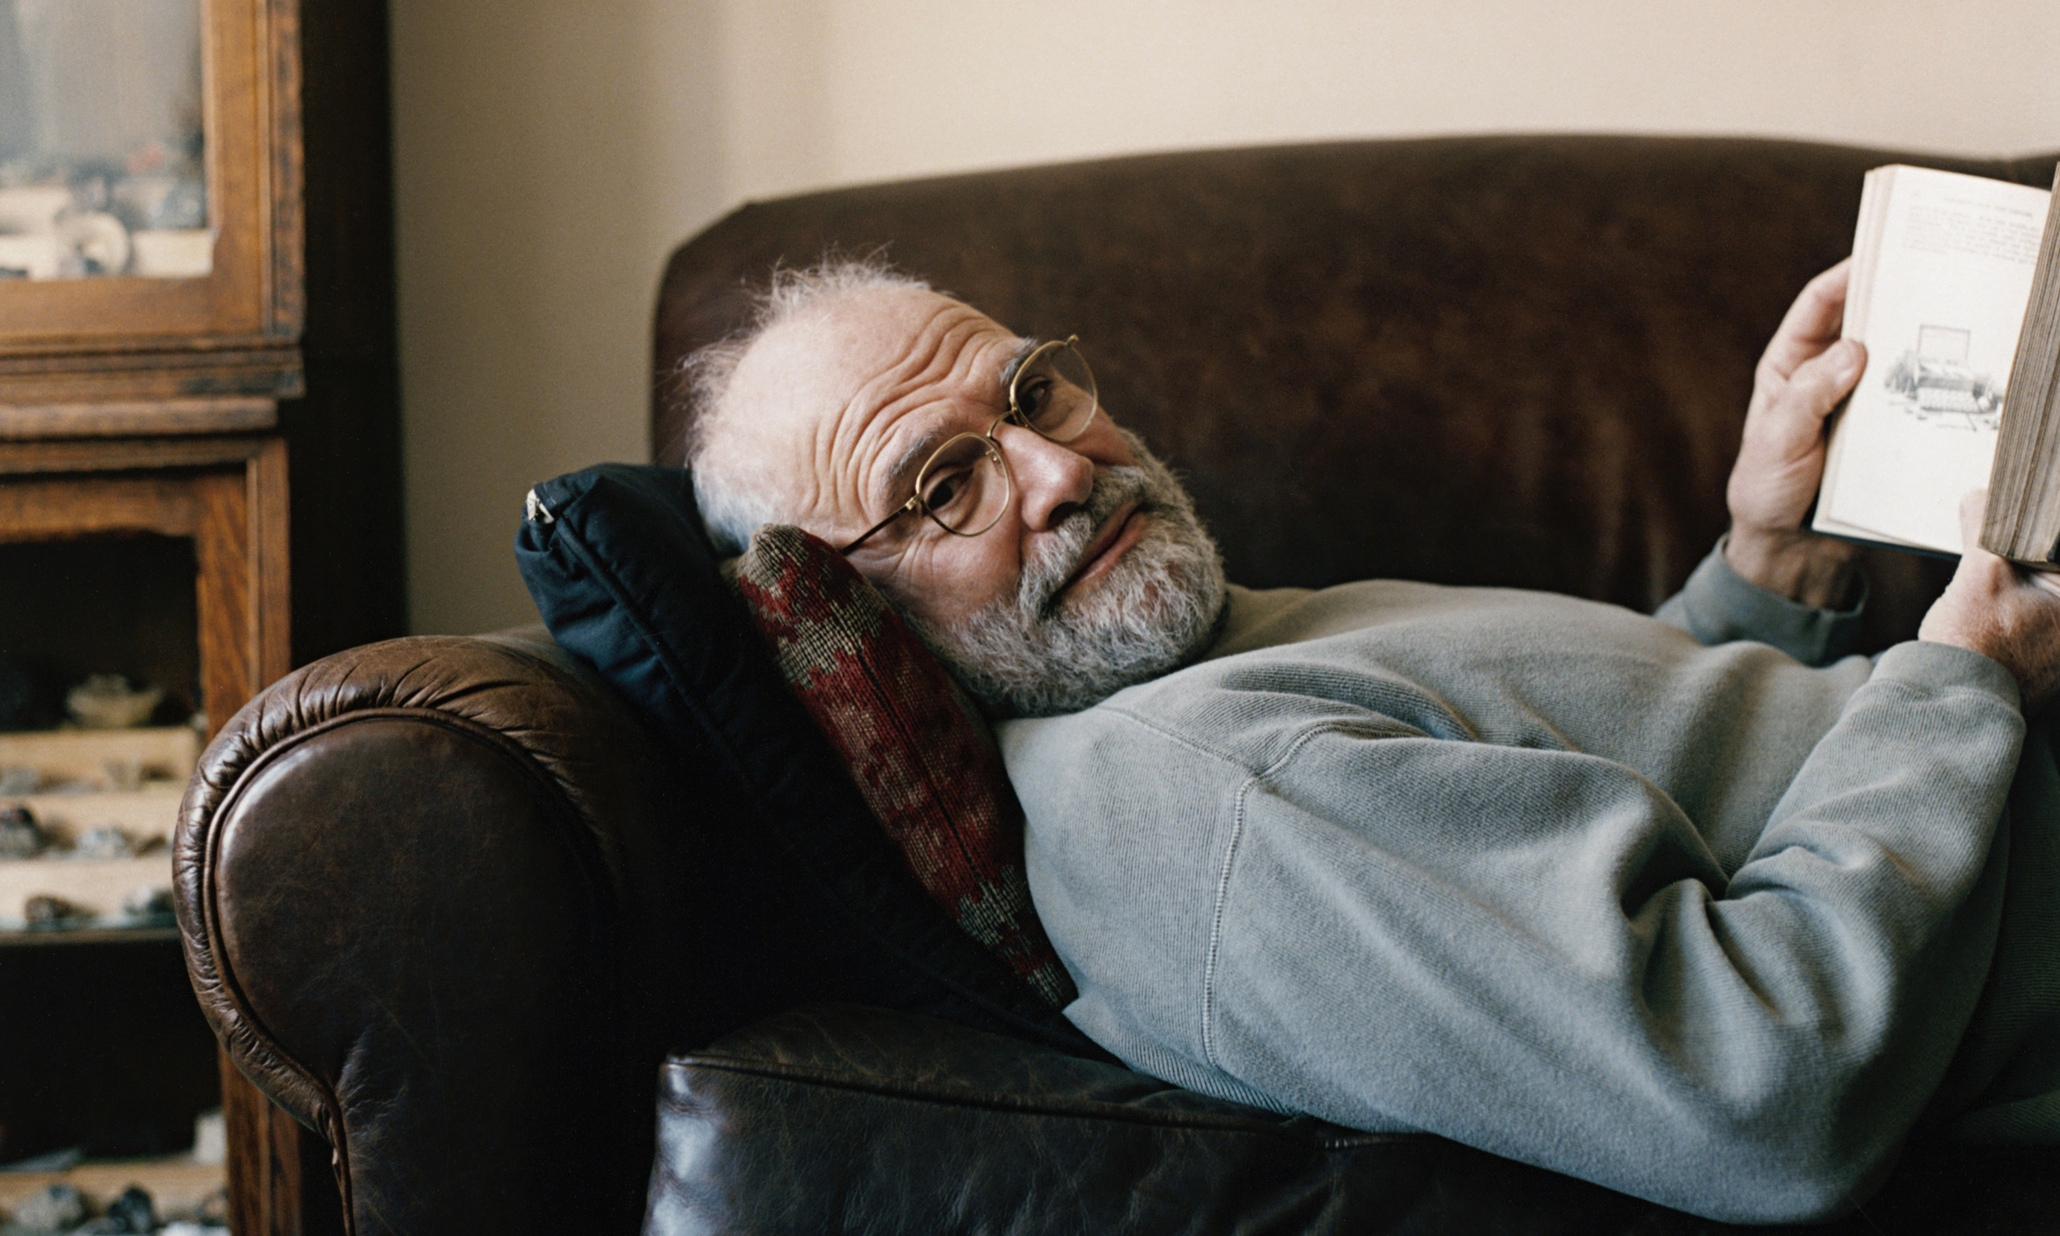 Oliver Sacks: The Man who Opened Our Minds